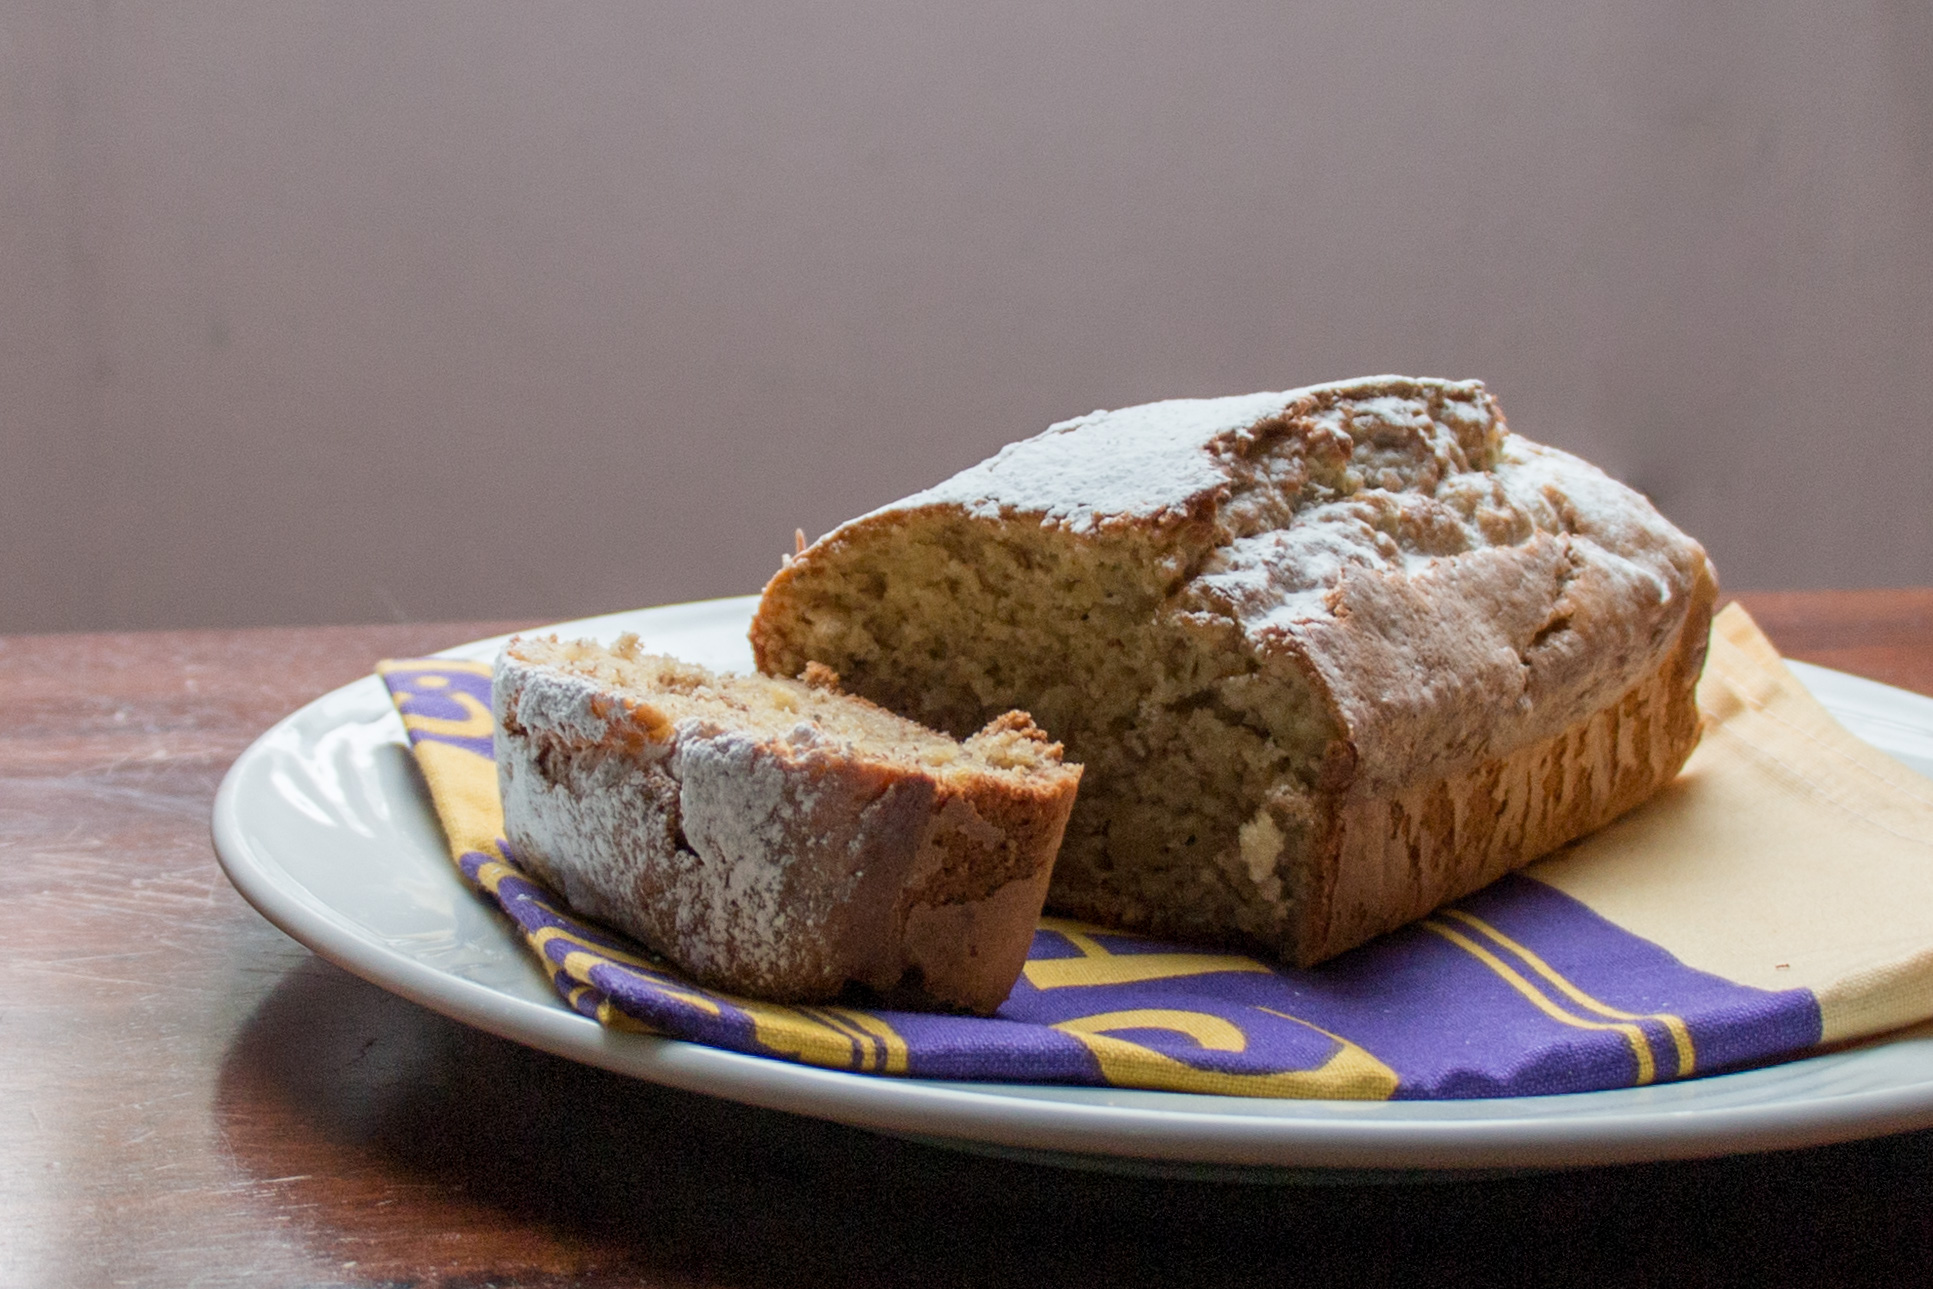 Banana loaf andieinspired banana loaf it has taken me a while to get this post sorted as i kept forgetting to take pictures for it but its fitting this is my first edmonds recipe forumfinder Choice Image